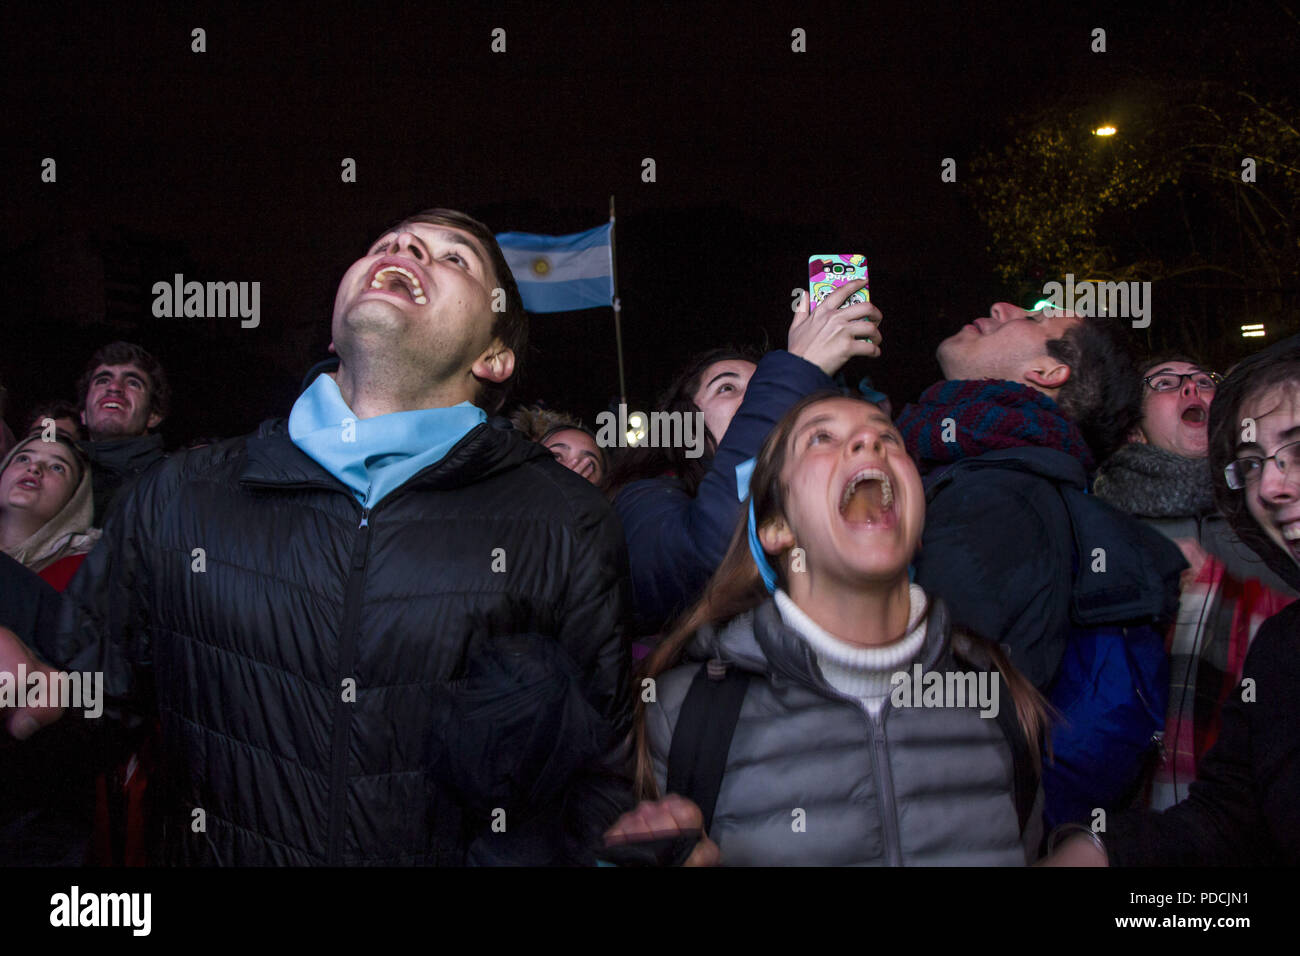 Buenos Aires, Federal Capital, Argentina. 9th Aug, 2018. In the vicinity of the Congress of the Argentine Nation, the people who were against the approval of the Law of Legal Abortion and in favor of the two lives happily celebrate the result of the vote in the Senate Chamber for the disapproval of the proposal, despite having been approved in the Chamber of Deputies. Credit: Roberto Almeida Aveledo/ZUMA Wire/Alamy Live News - Stock Image